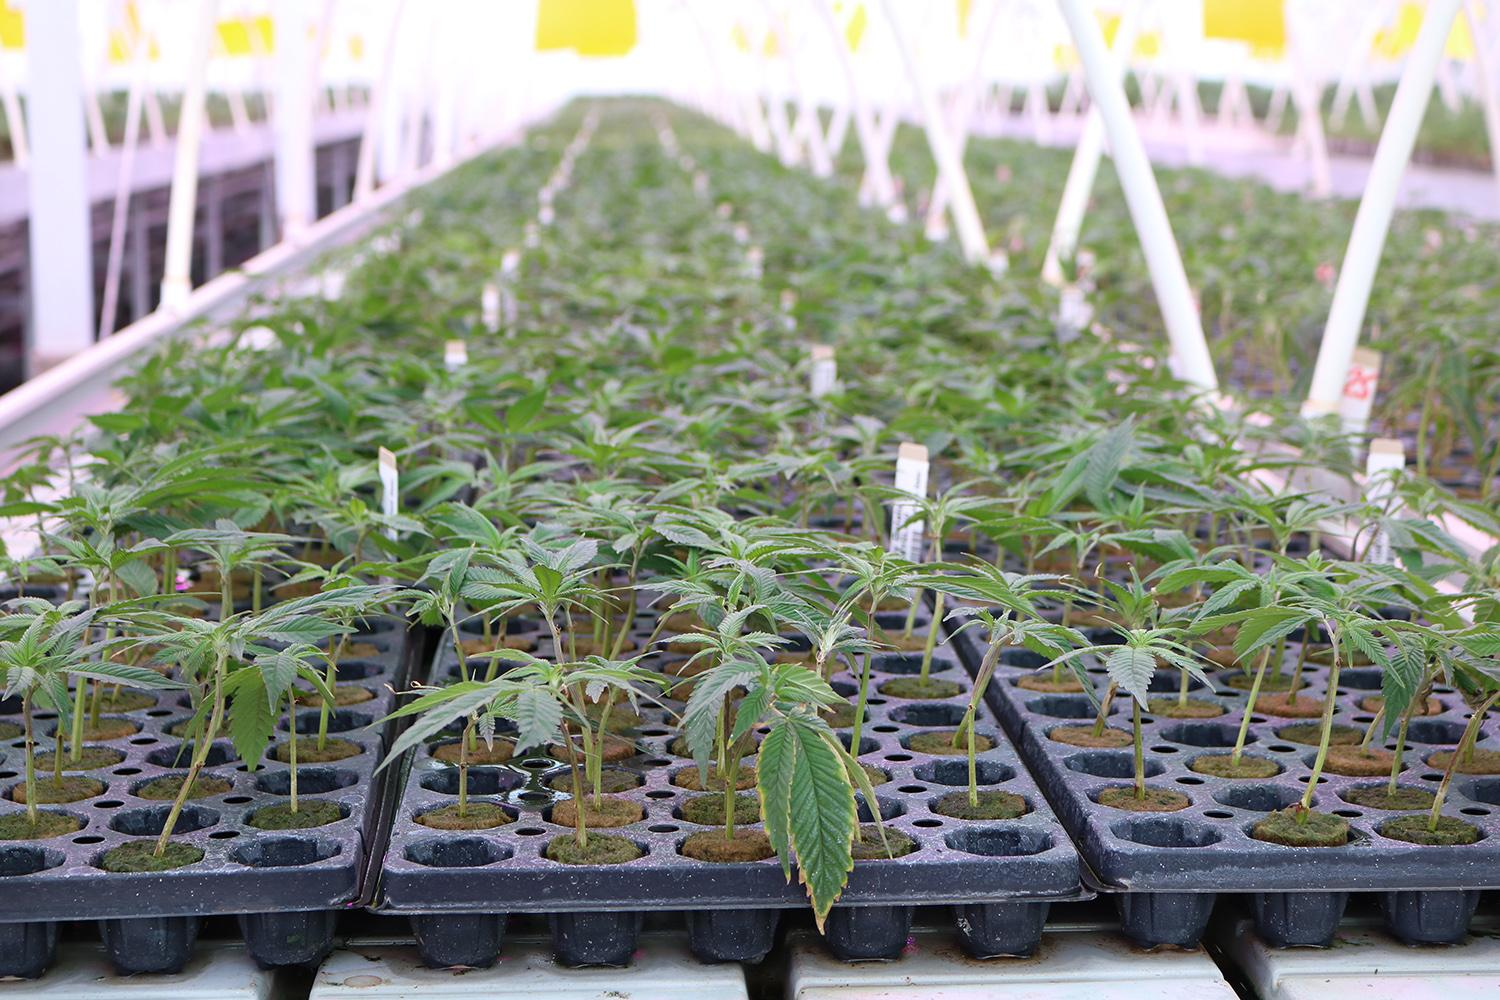 Young marijuana plants at Copperstate Farms